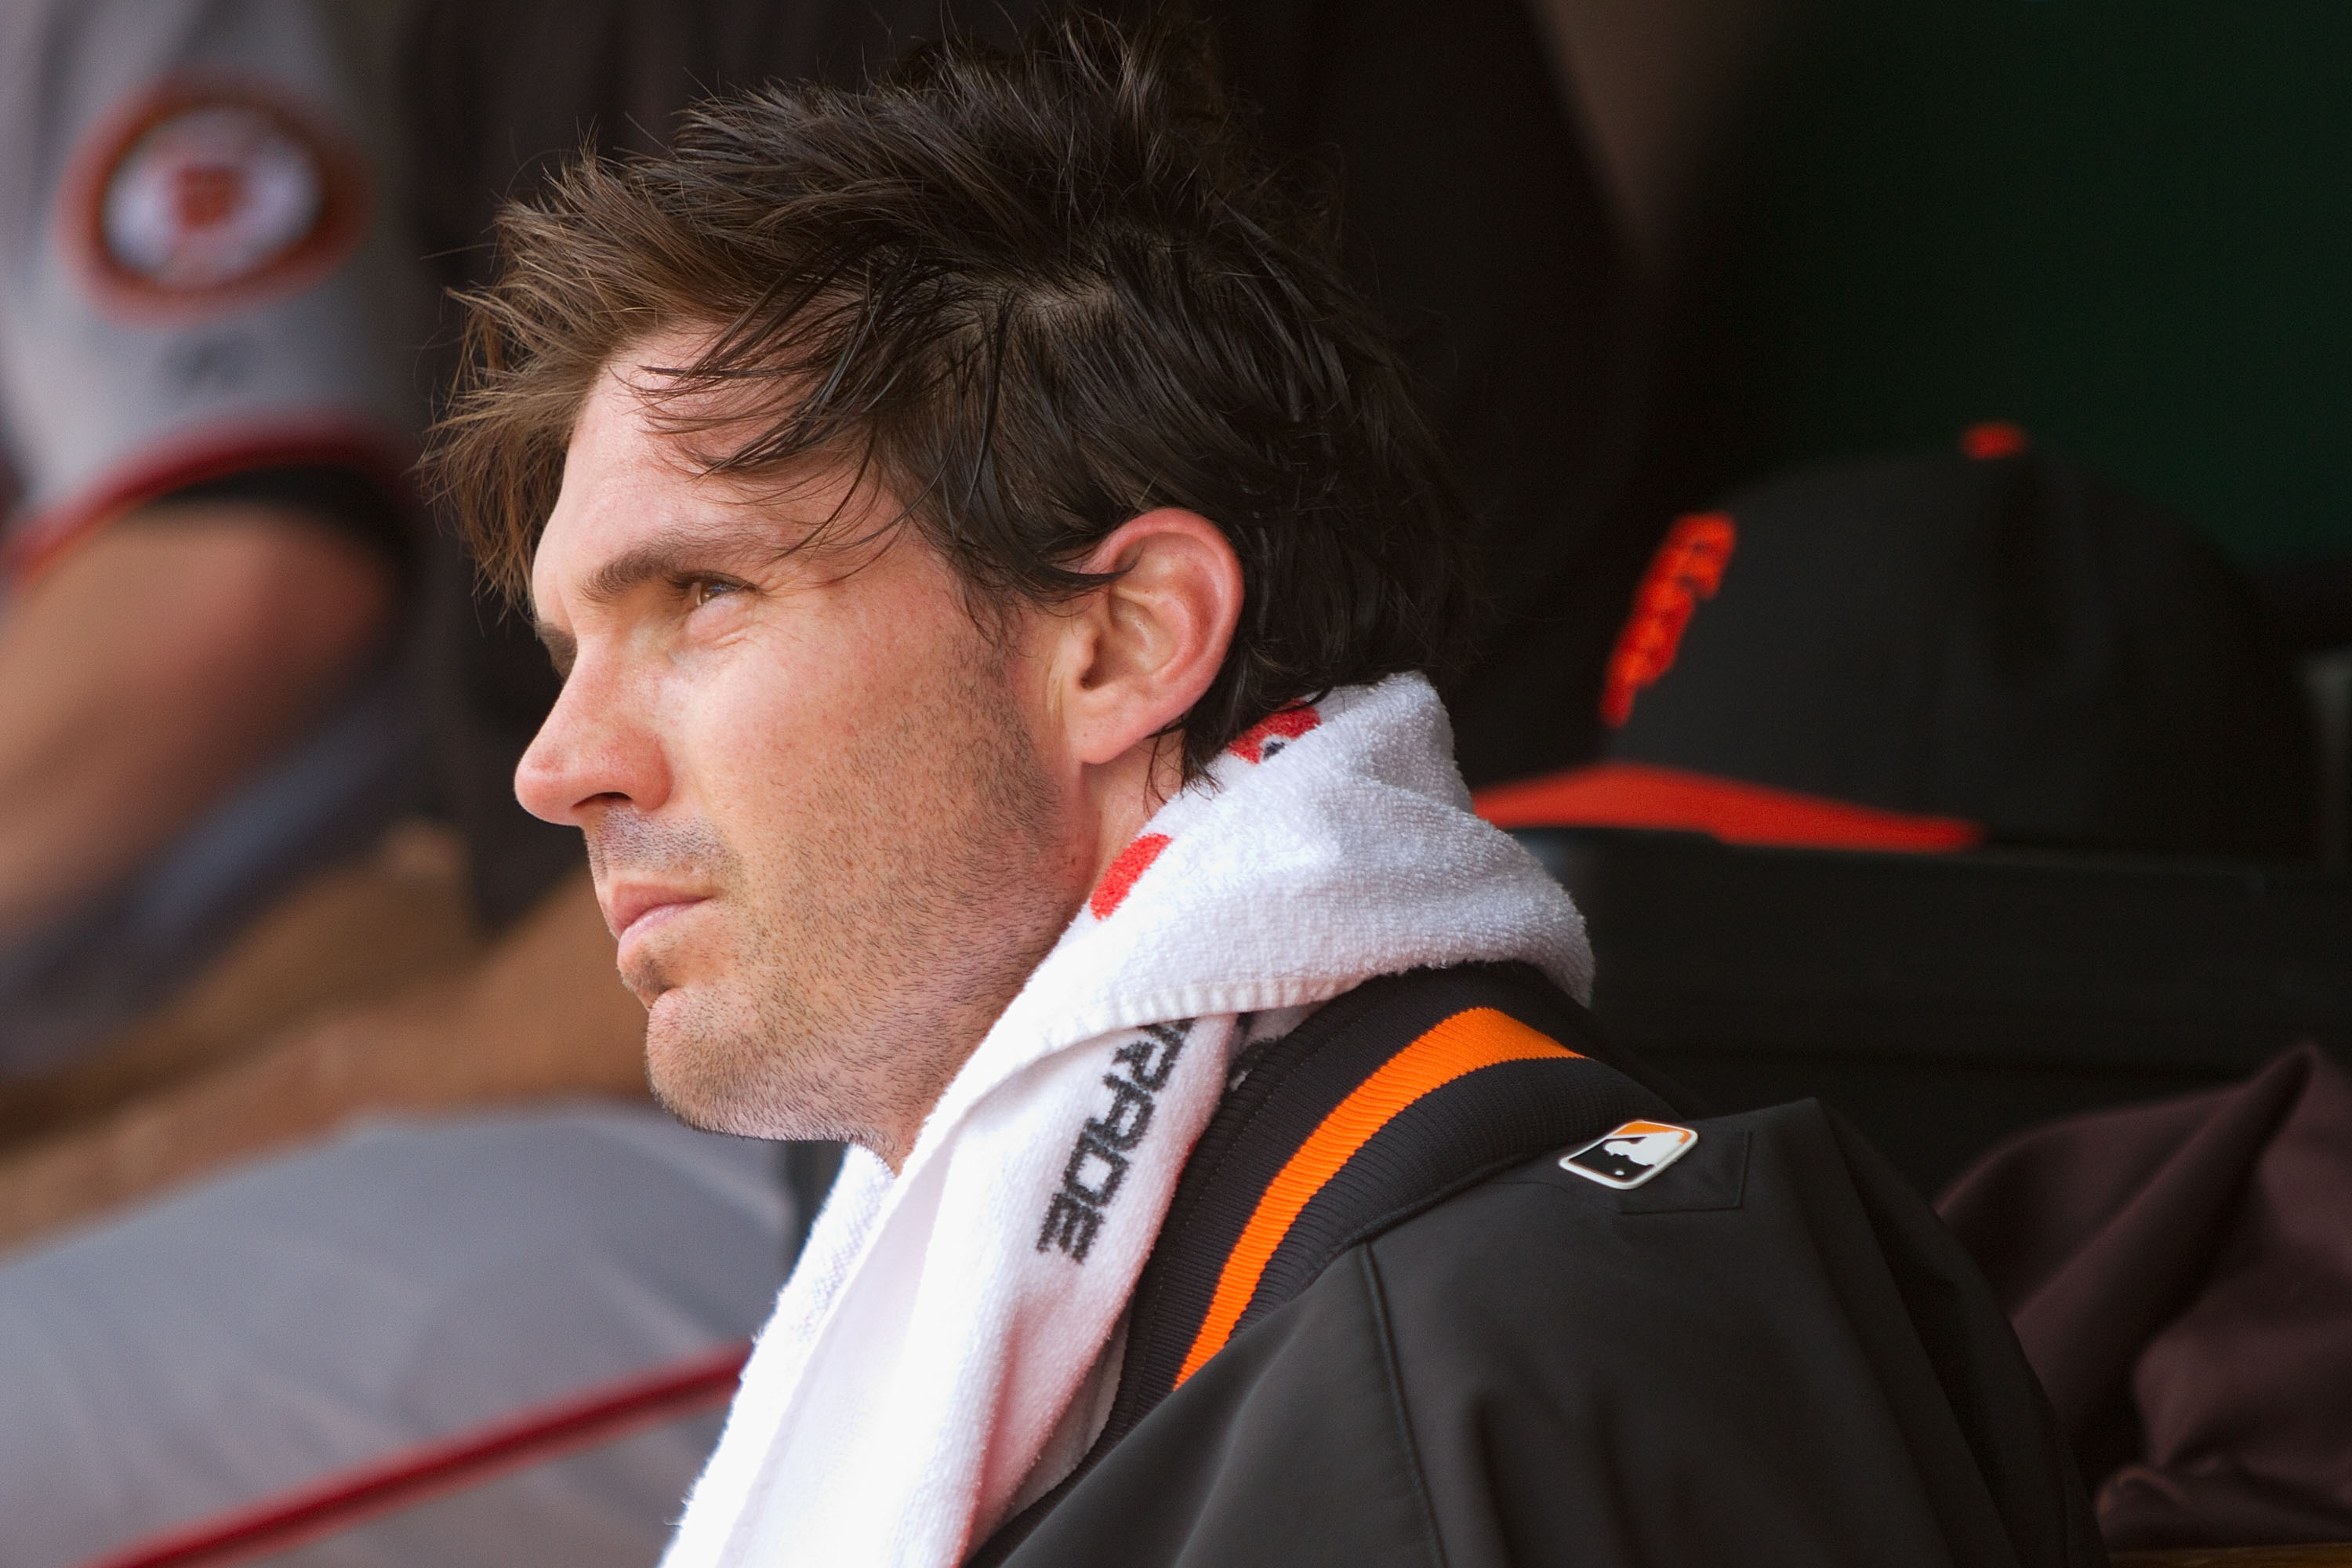 ST. LOUIS - AUGUST 22: Starter Barry Zito #75 of the San Francisco Giants looks on from the dugout against the St. Louis Cardinals at Busch Stadium on August 22, 2010 in St. Louis, Missouri.  (Photo by Dilip Vishwanat/Getty Images)